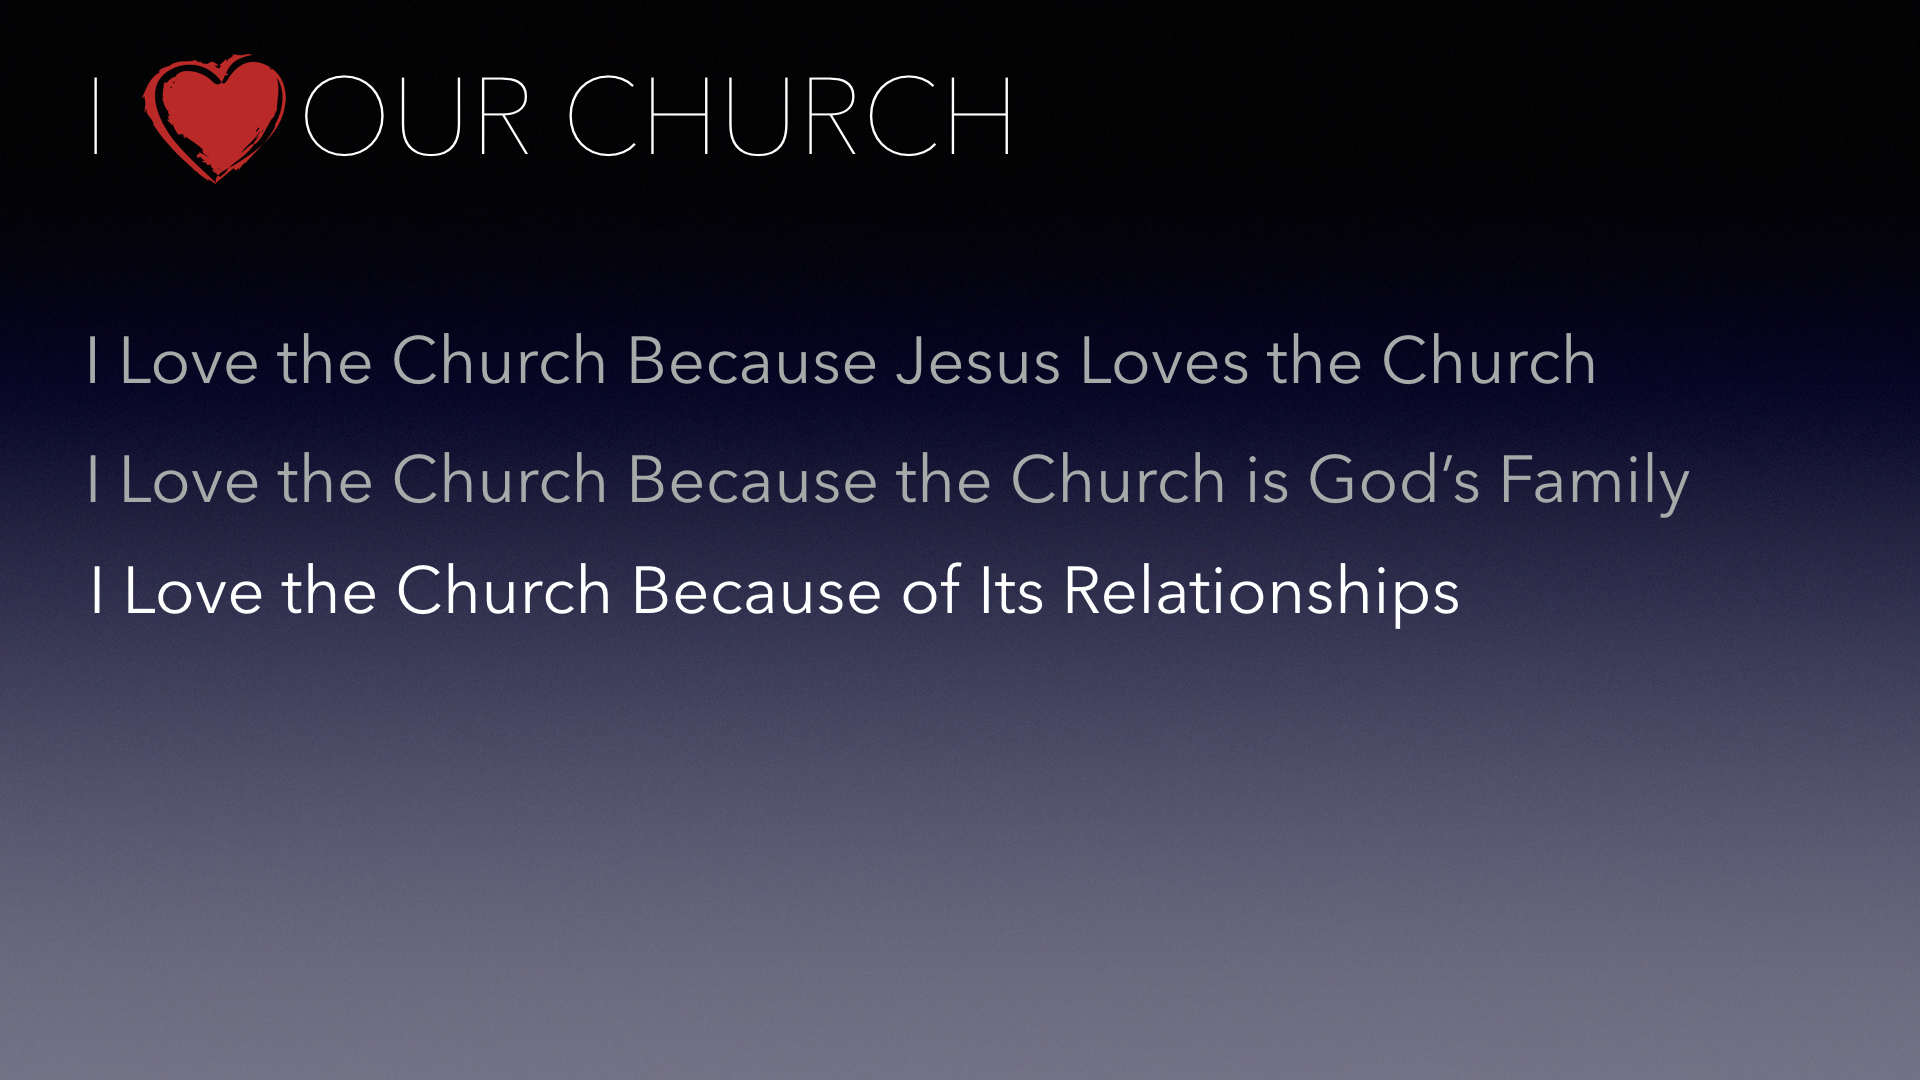 i-love-our-church-008